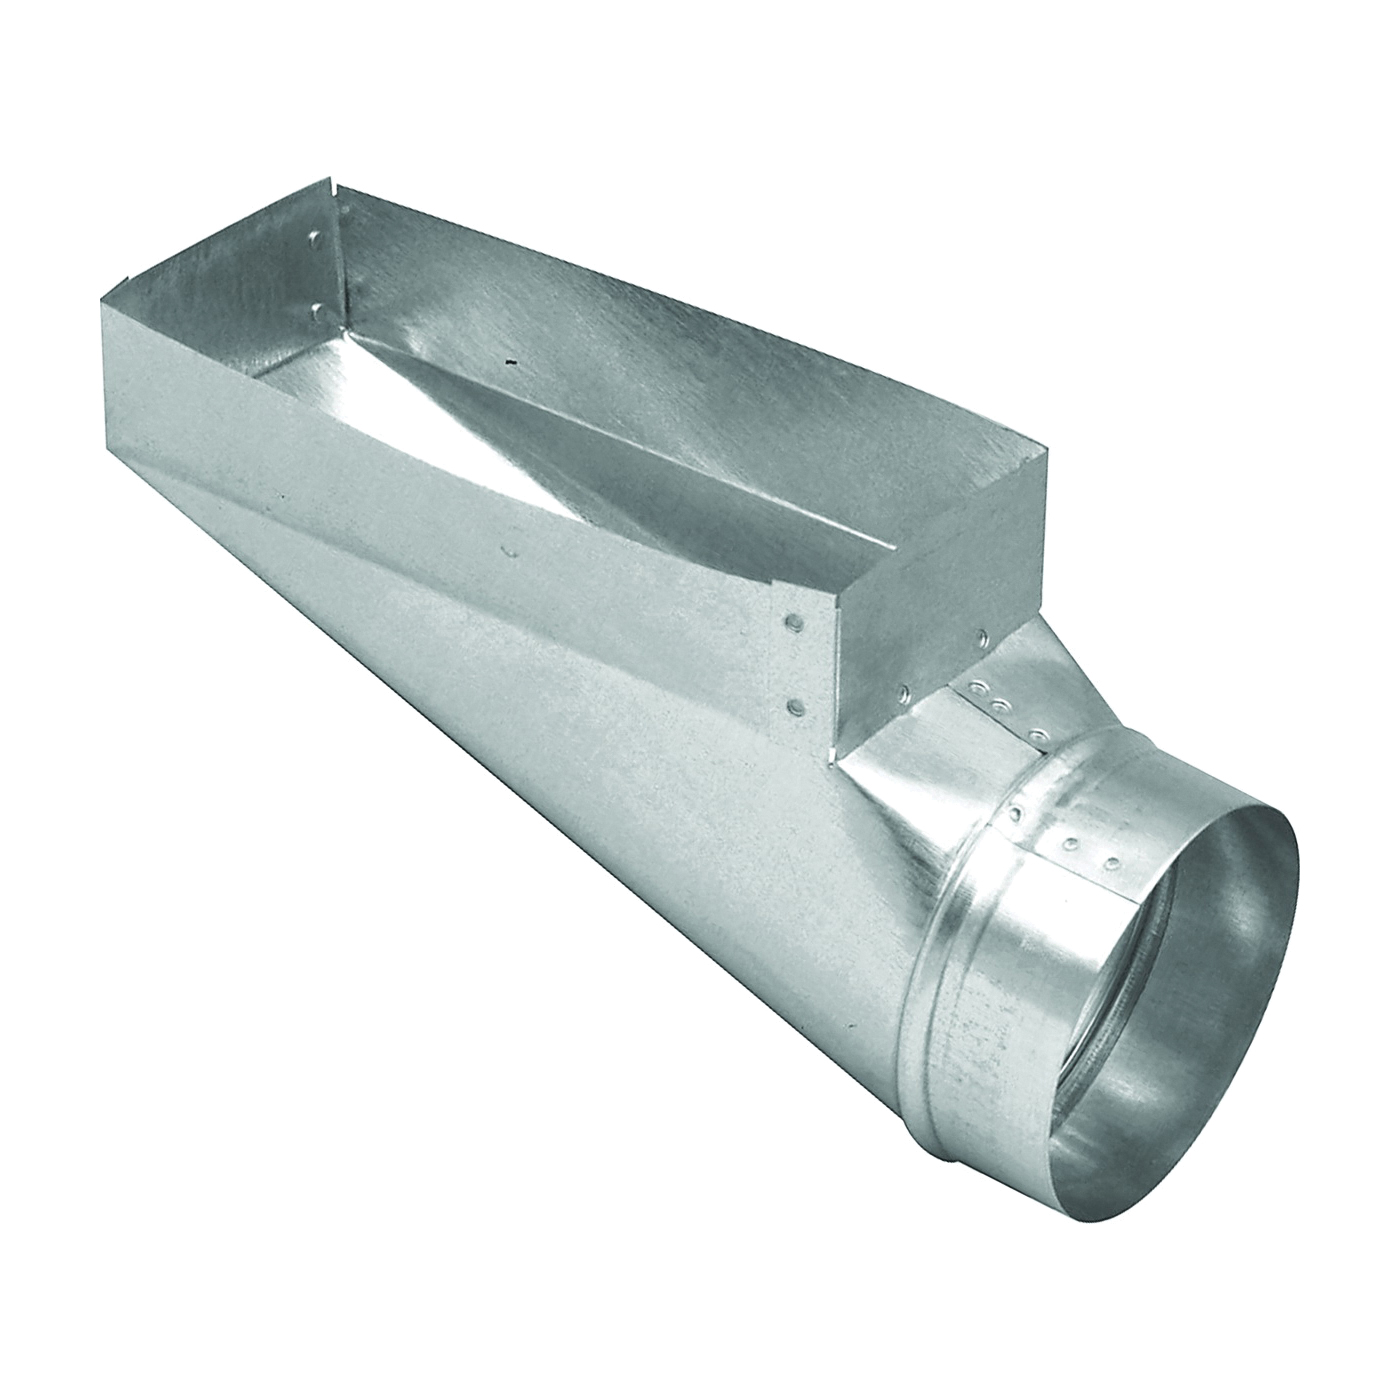 Picture of Imperial GV0656 End Boot, 3 in L, 10 in W, 5 in H, 90 deg Angle, Steel, Galvanized